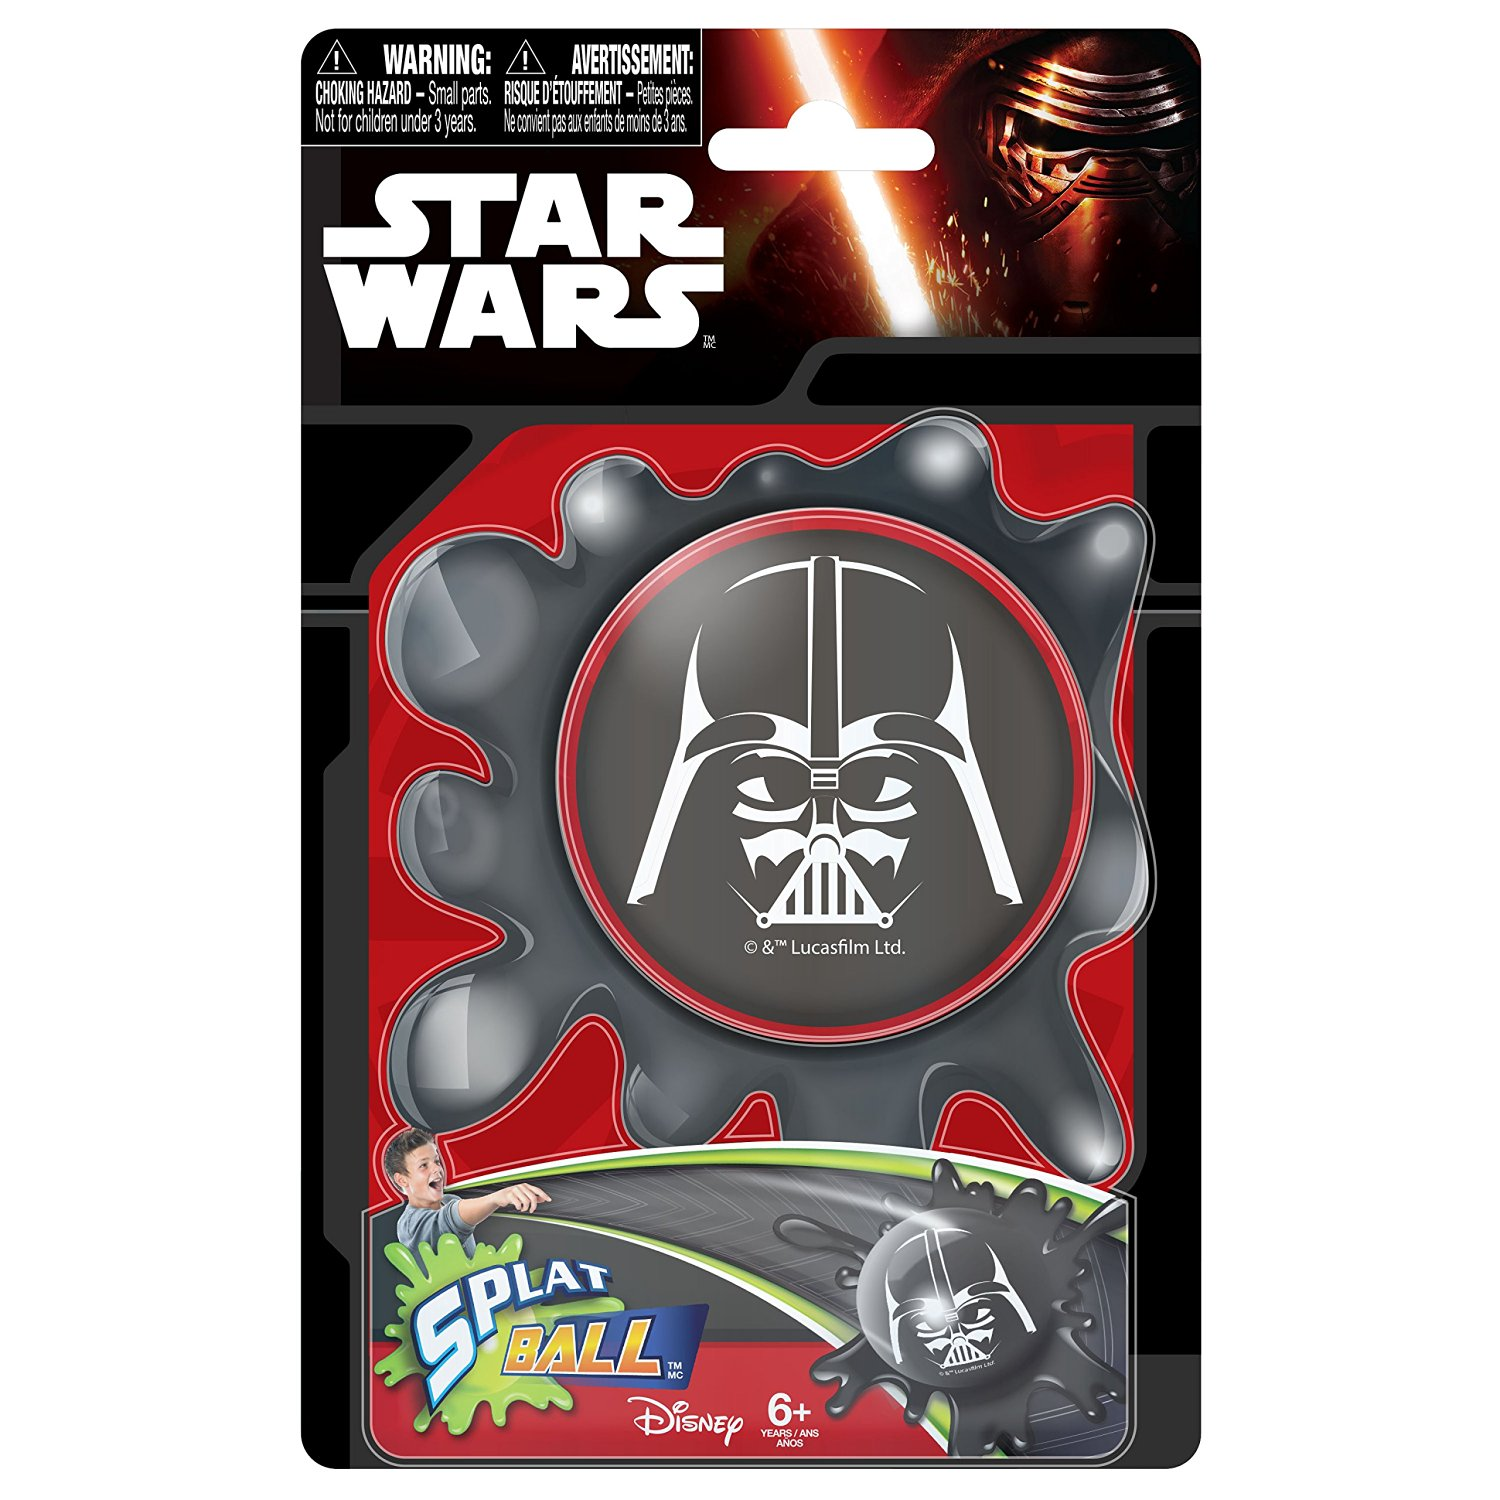 Star Wars Splat Ball Darth Vader